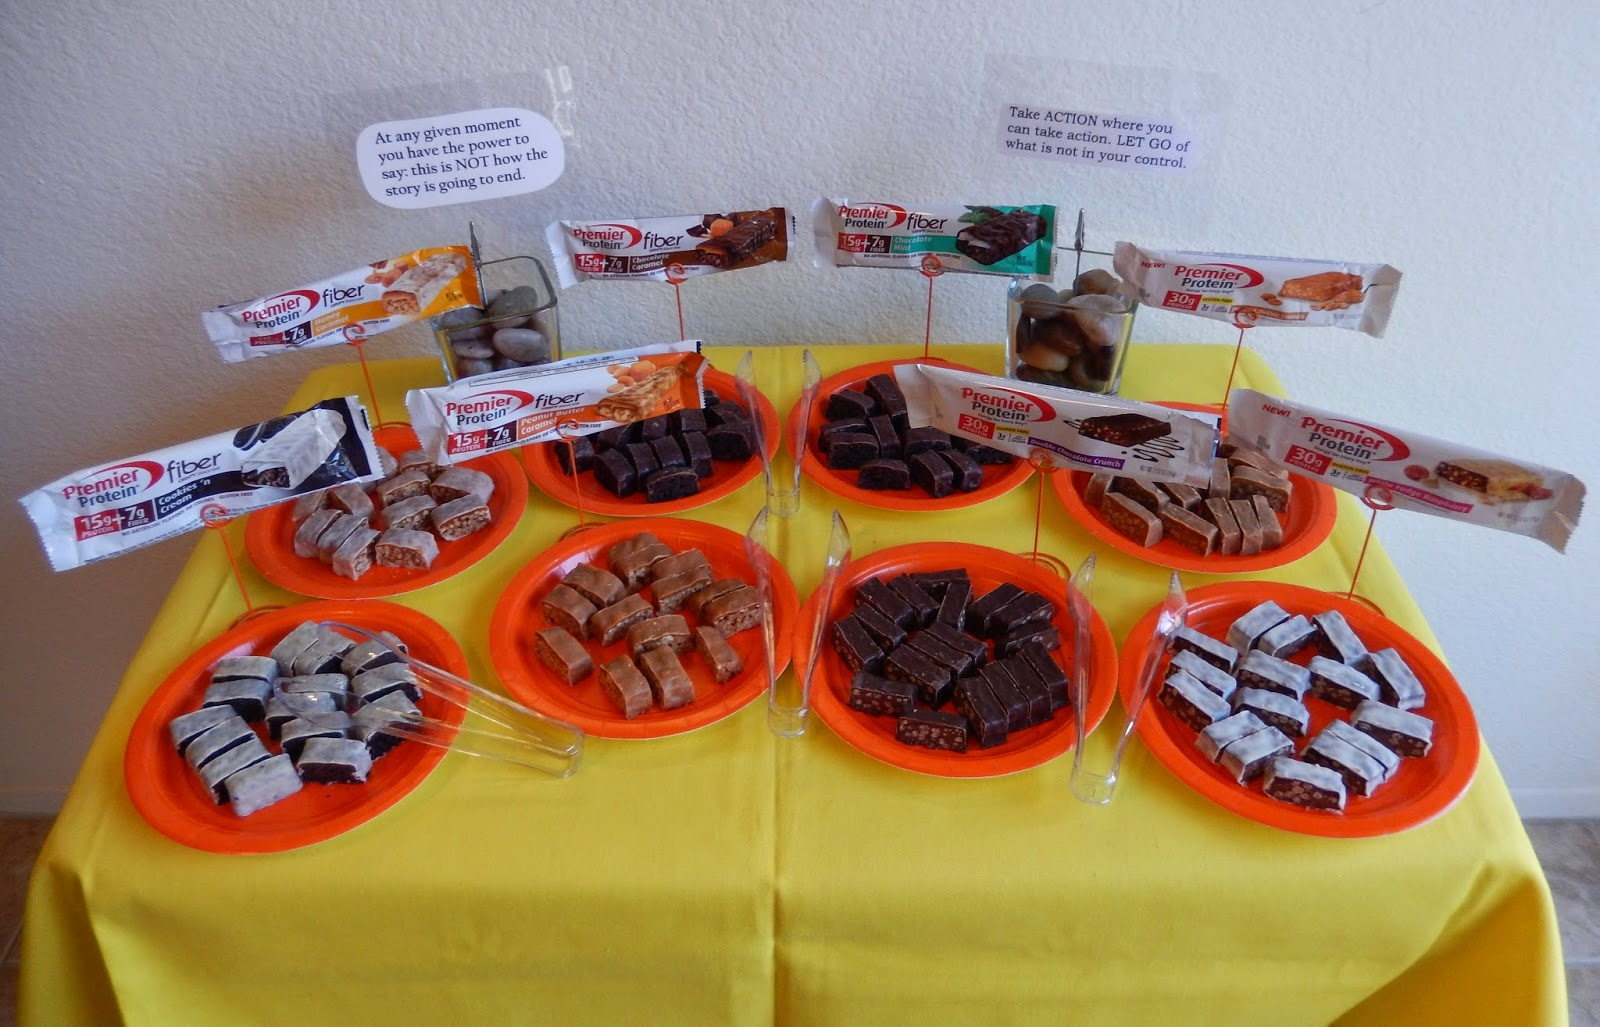 Protein%2BBar%2BTasting%2BParty%2BEggface%2BPremier%2BProtein Weight Loss Recipes Host a Protein Bar and Shake Tasting Party!